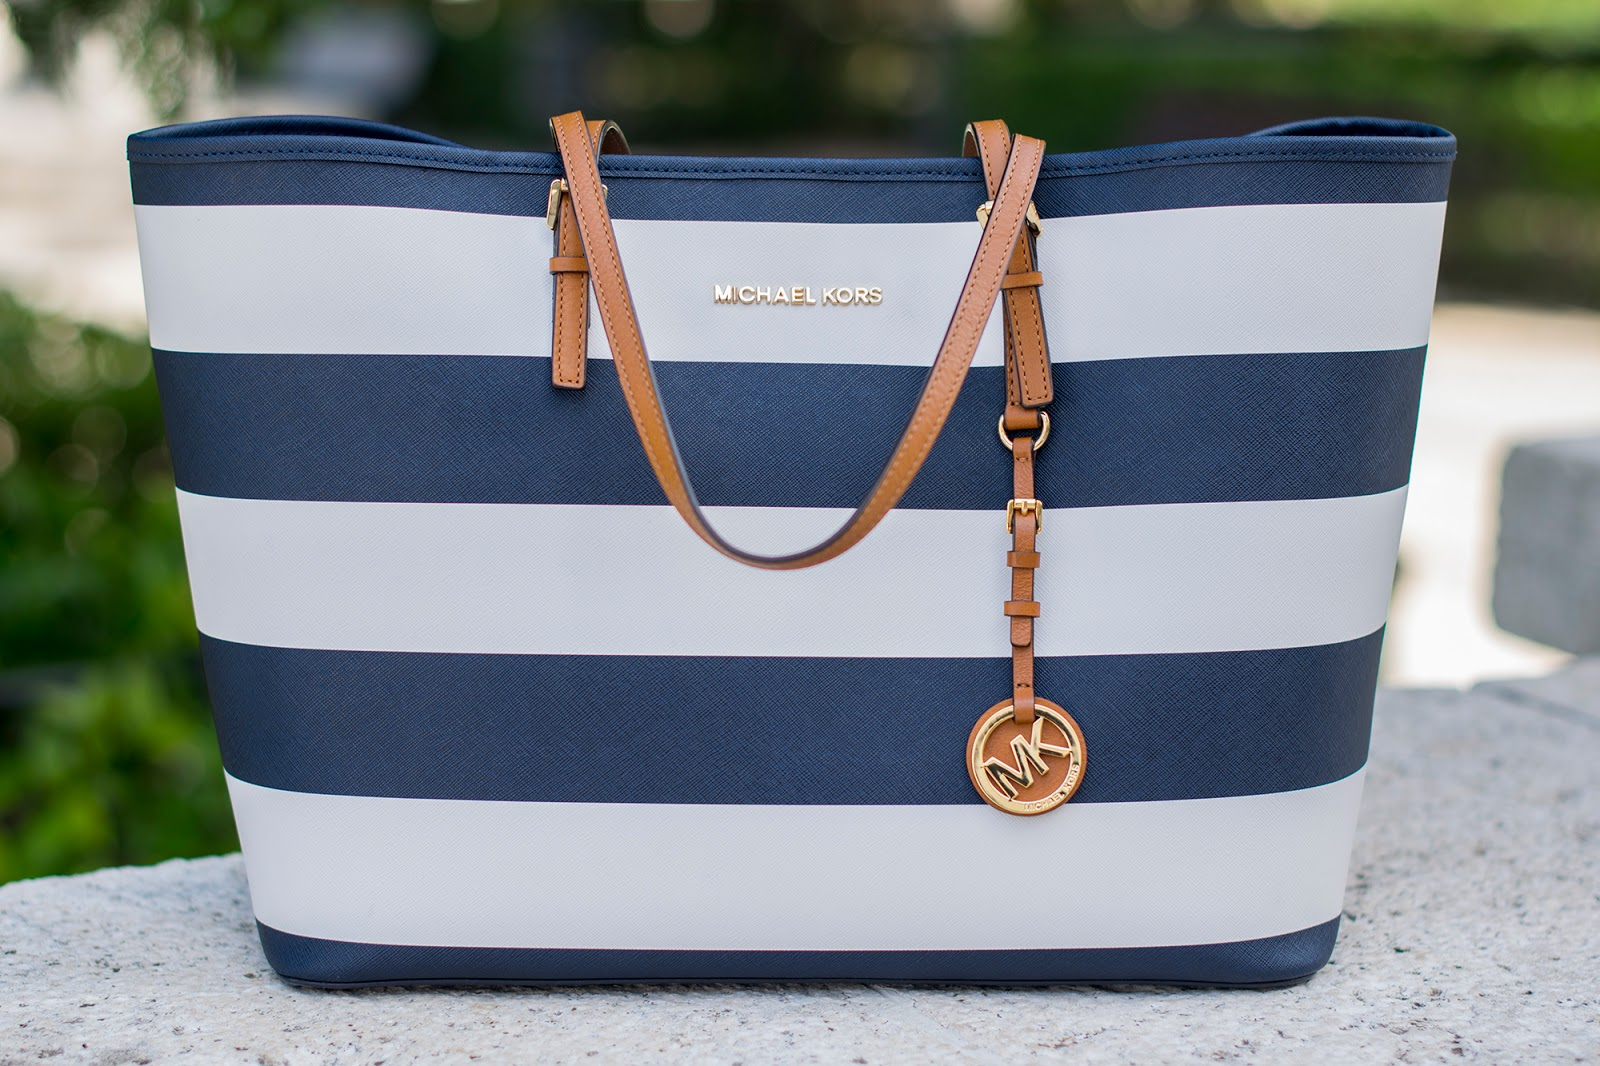 Bolso Michaels Kors rayas navy